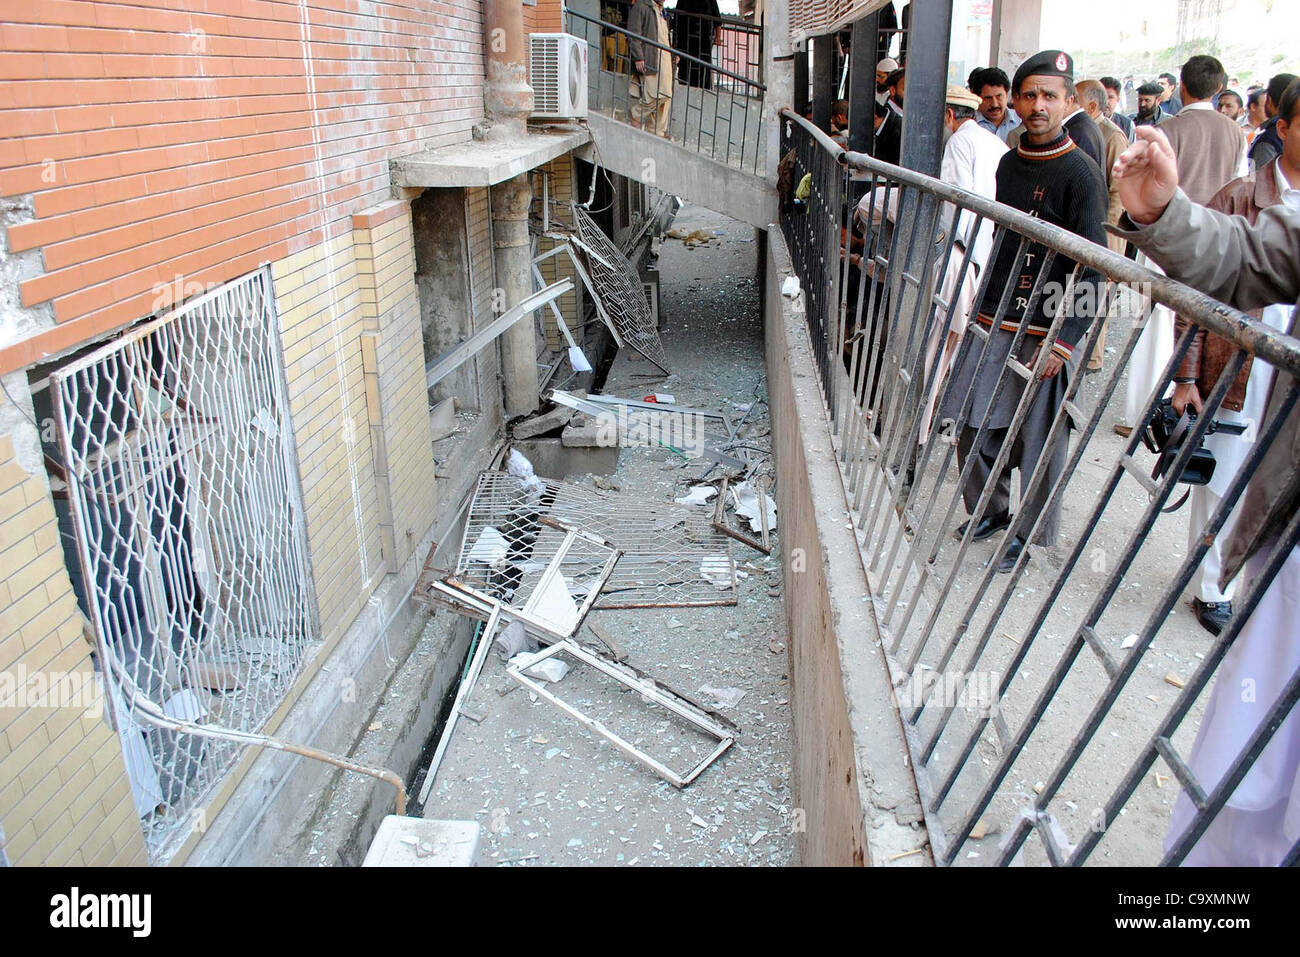 People gather at a damaged portion of building after gas cylinder blast at Pathology Department at Lady Reading - Stock Image